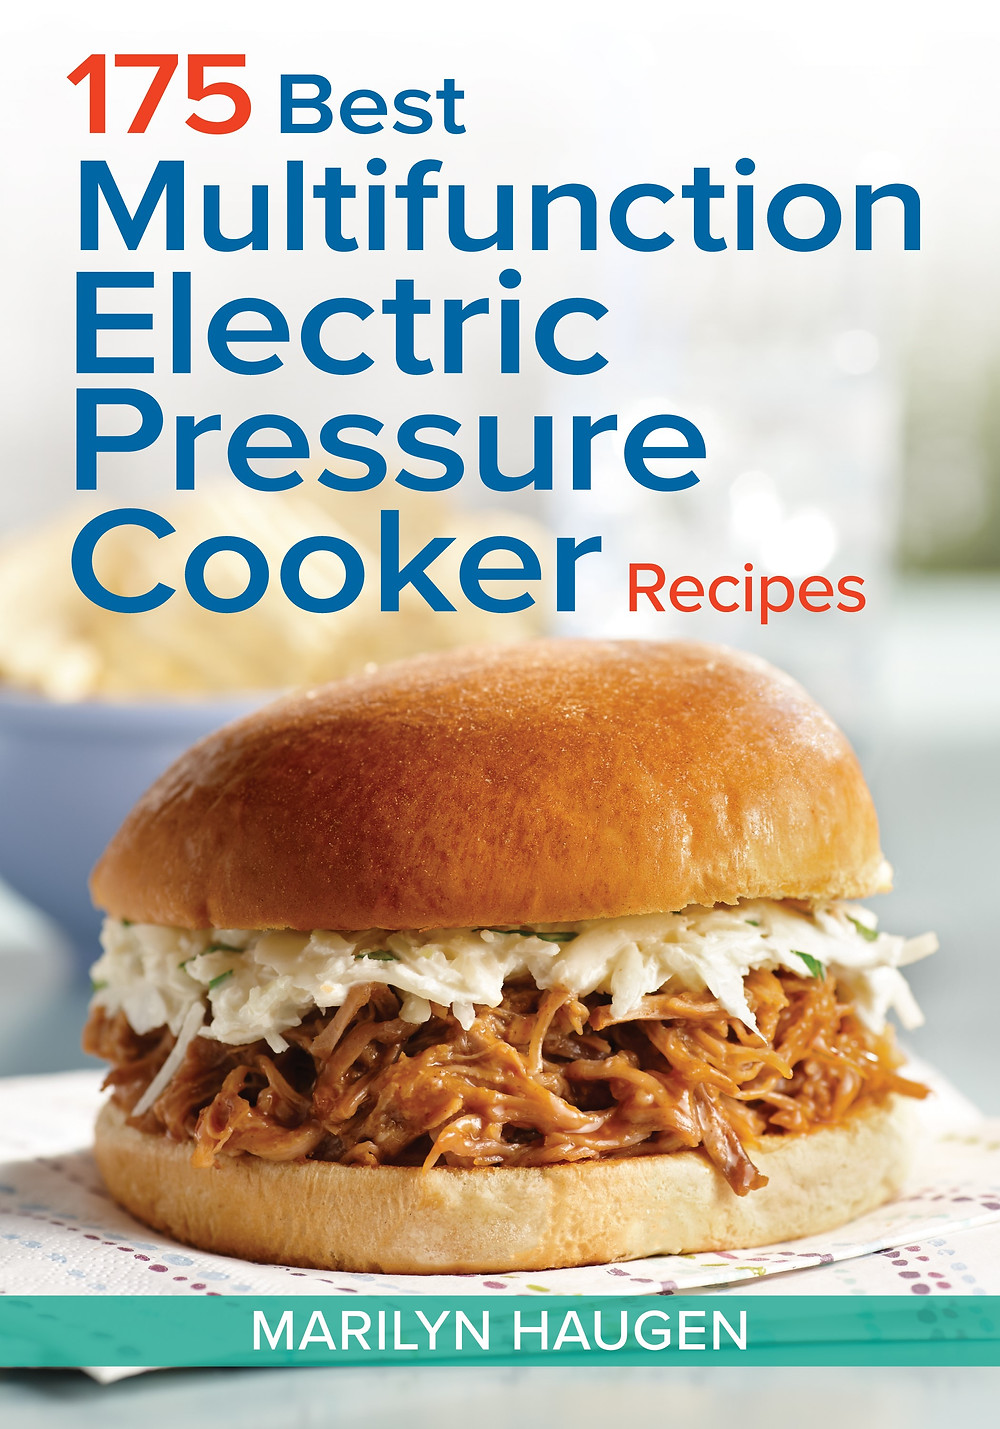 Robert Rose 175 Best Multifunction Electric Pressure Cooker Recipes